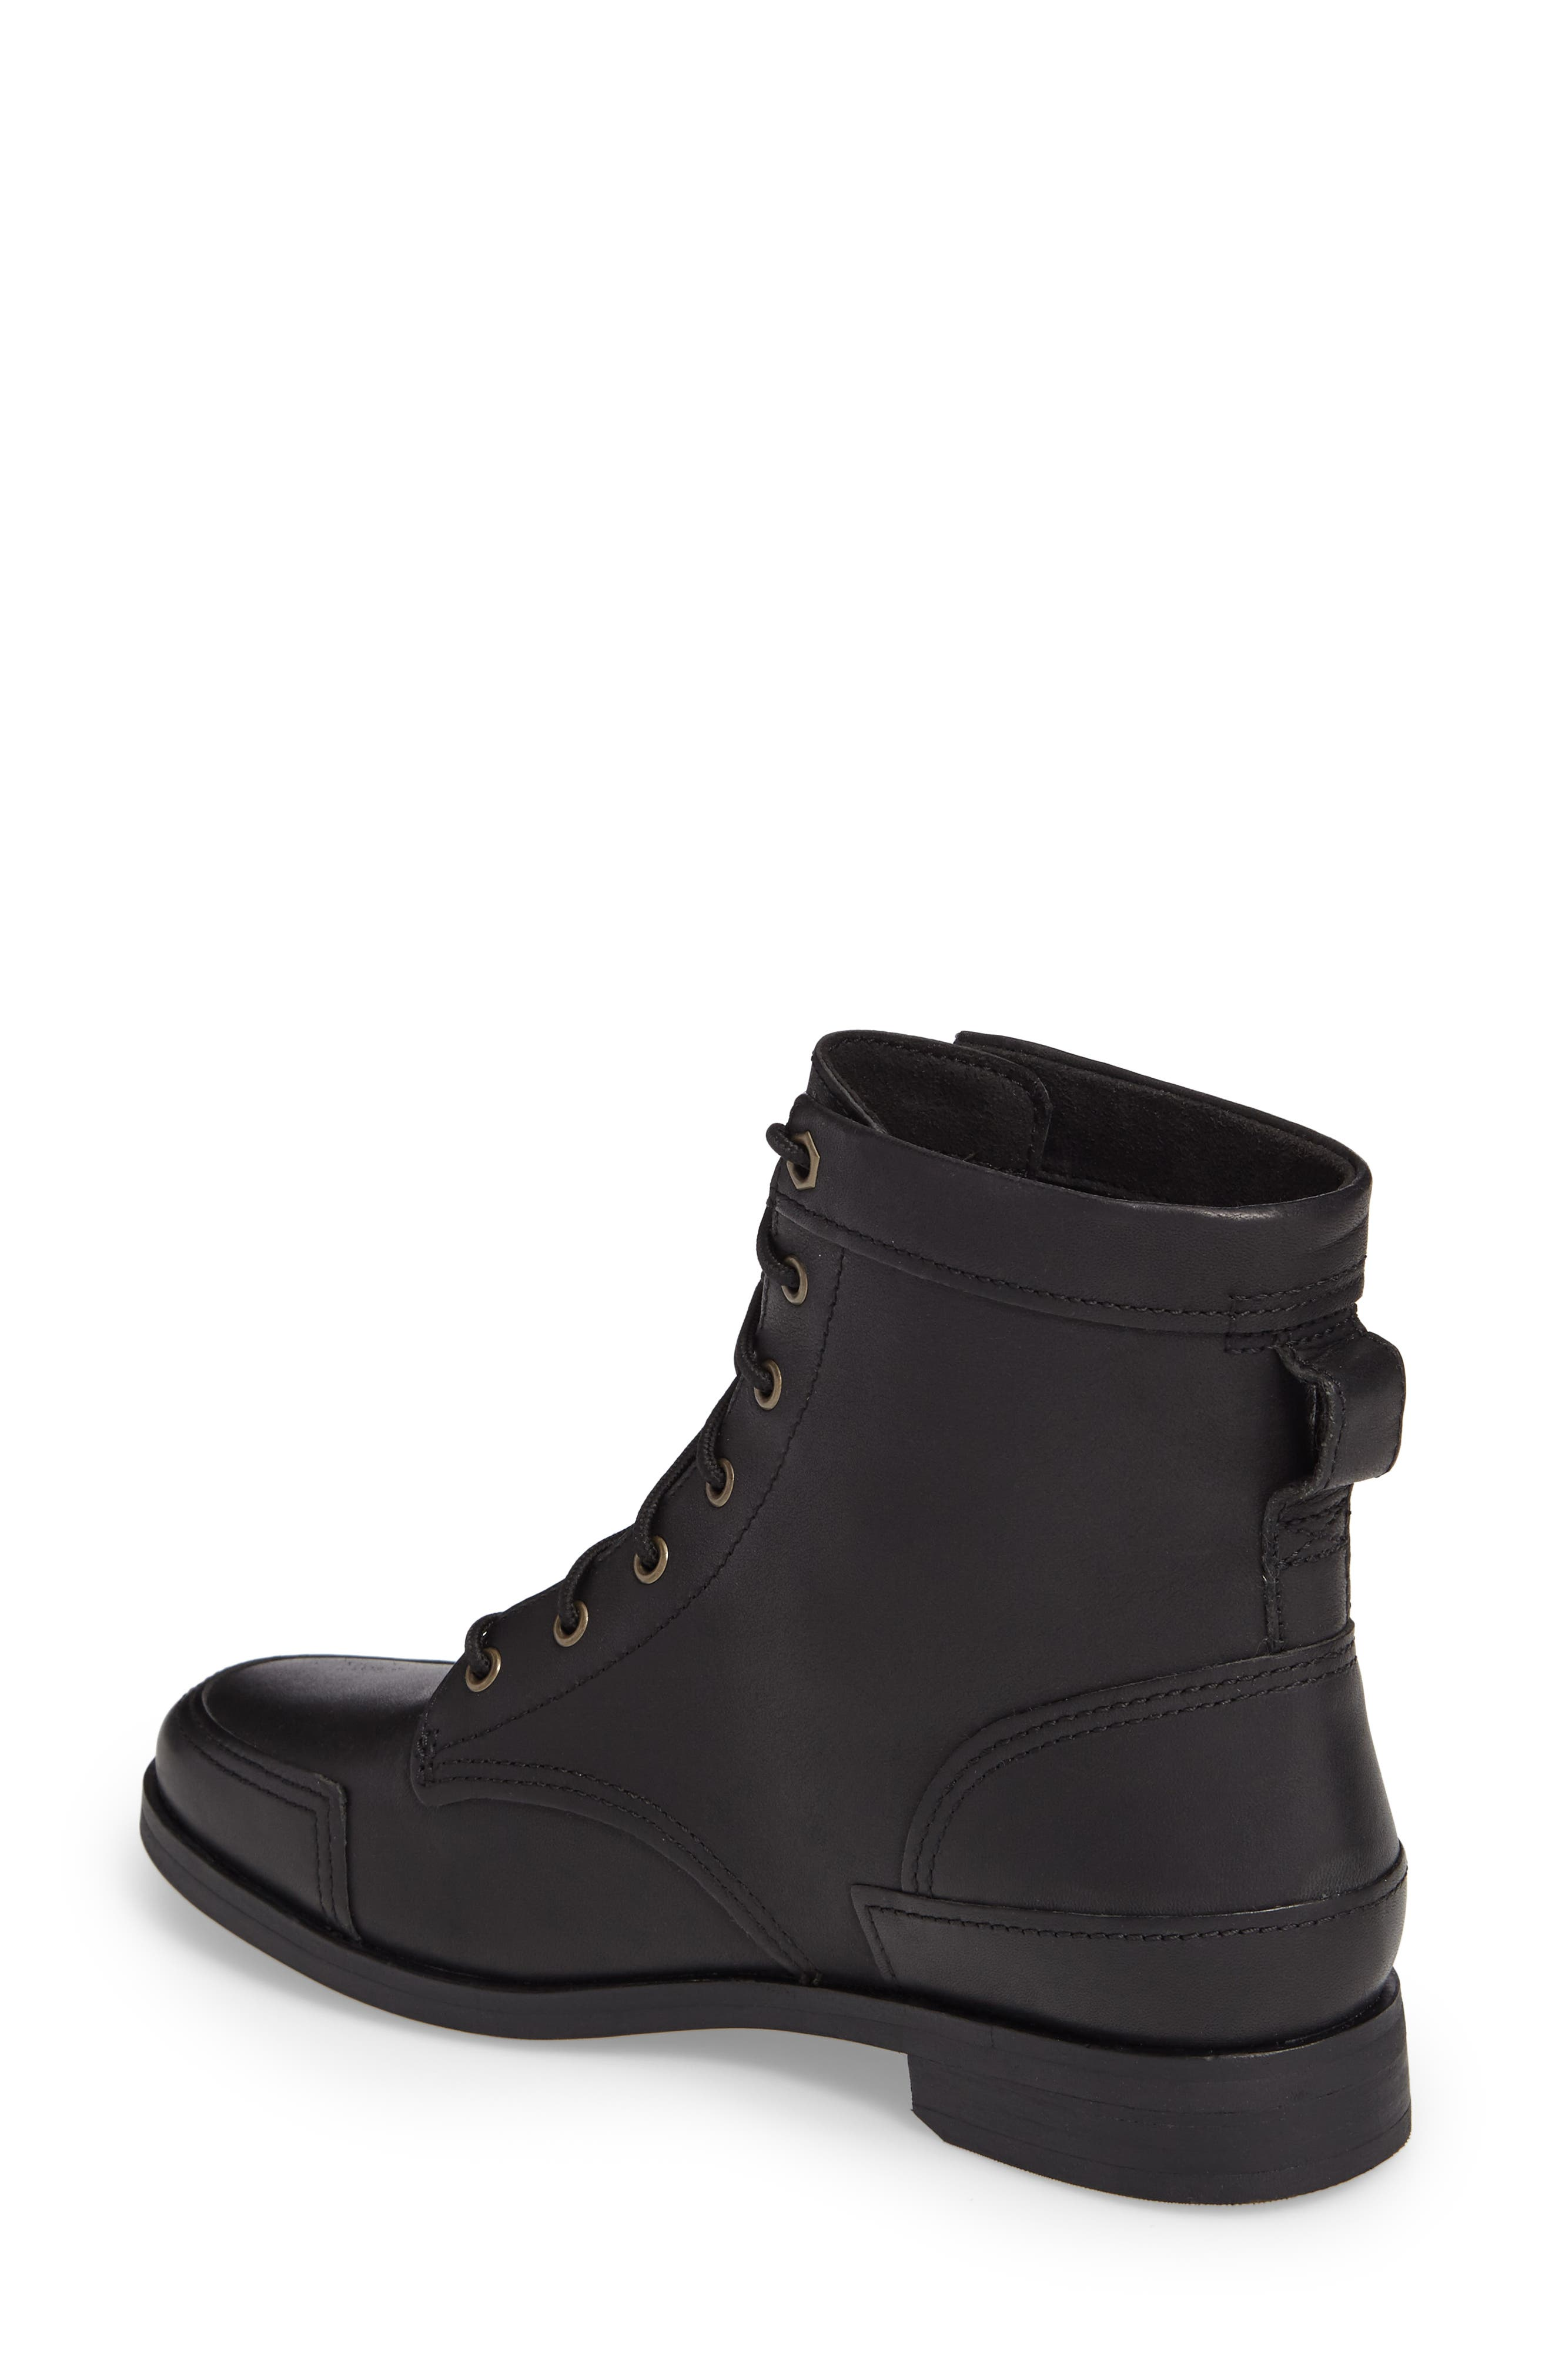 Somers Falls Lace-Up Boot,                             Alternate thumbnail 2, color,                             001